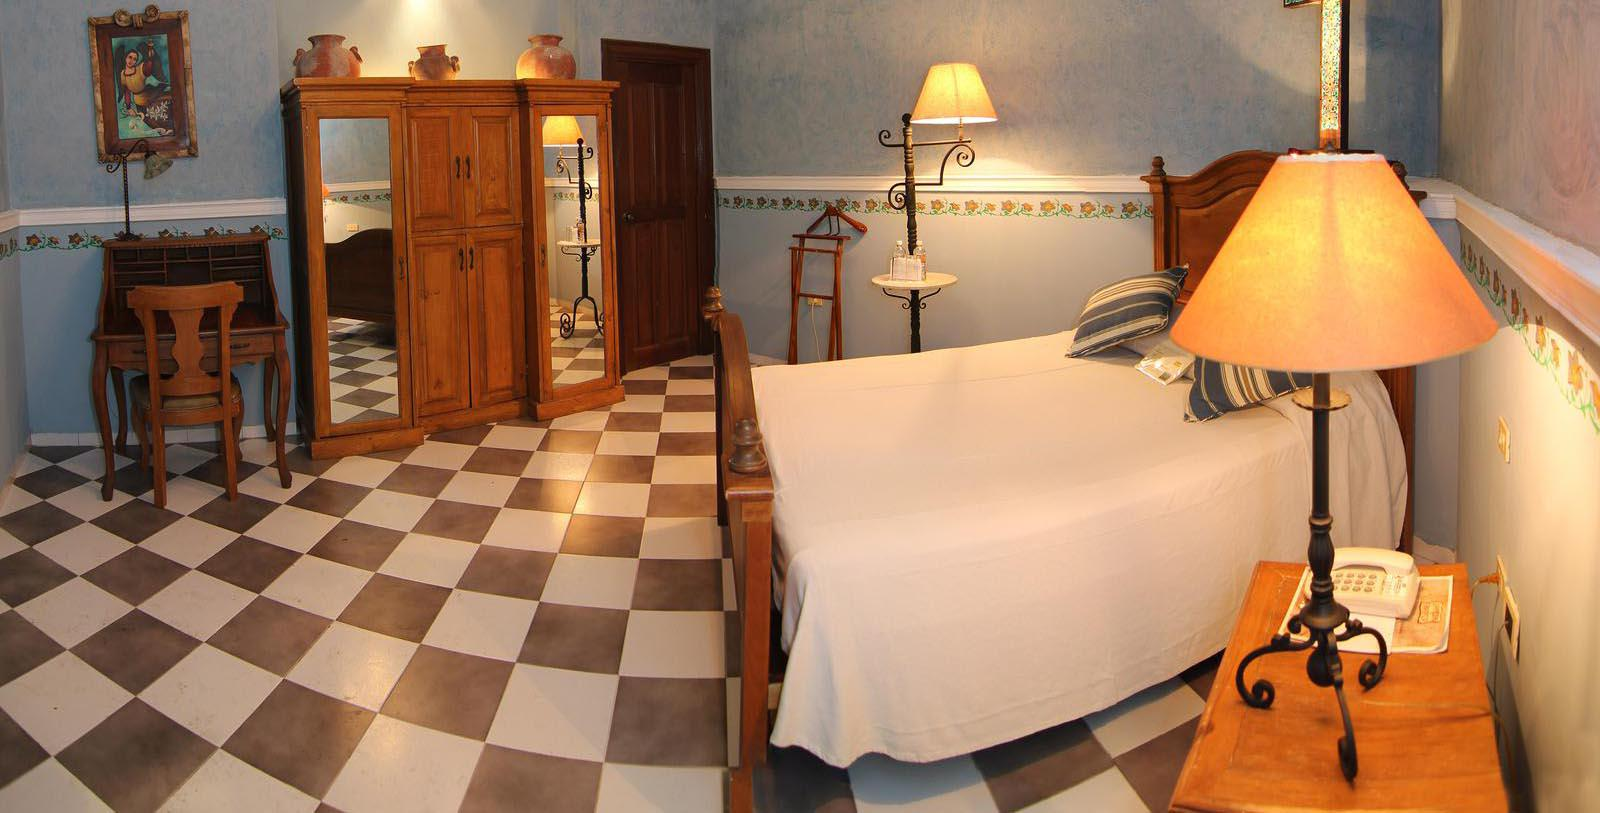 Image of Guestroom Interior La Misión de Fray Diego, 1867 Member of Historic Hotels Worldwide, in Merida, Mexico, Accommodations